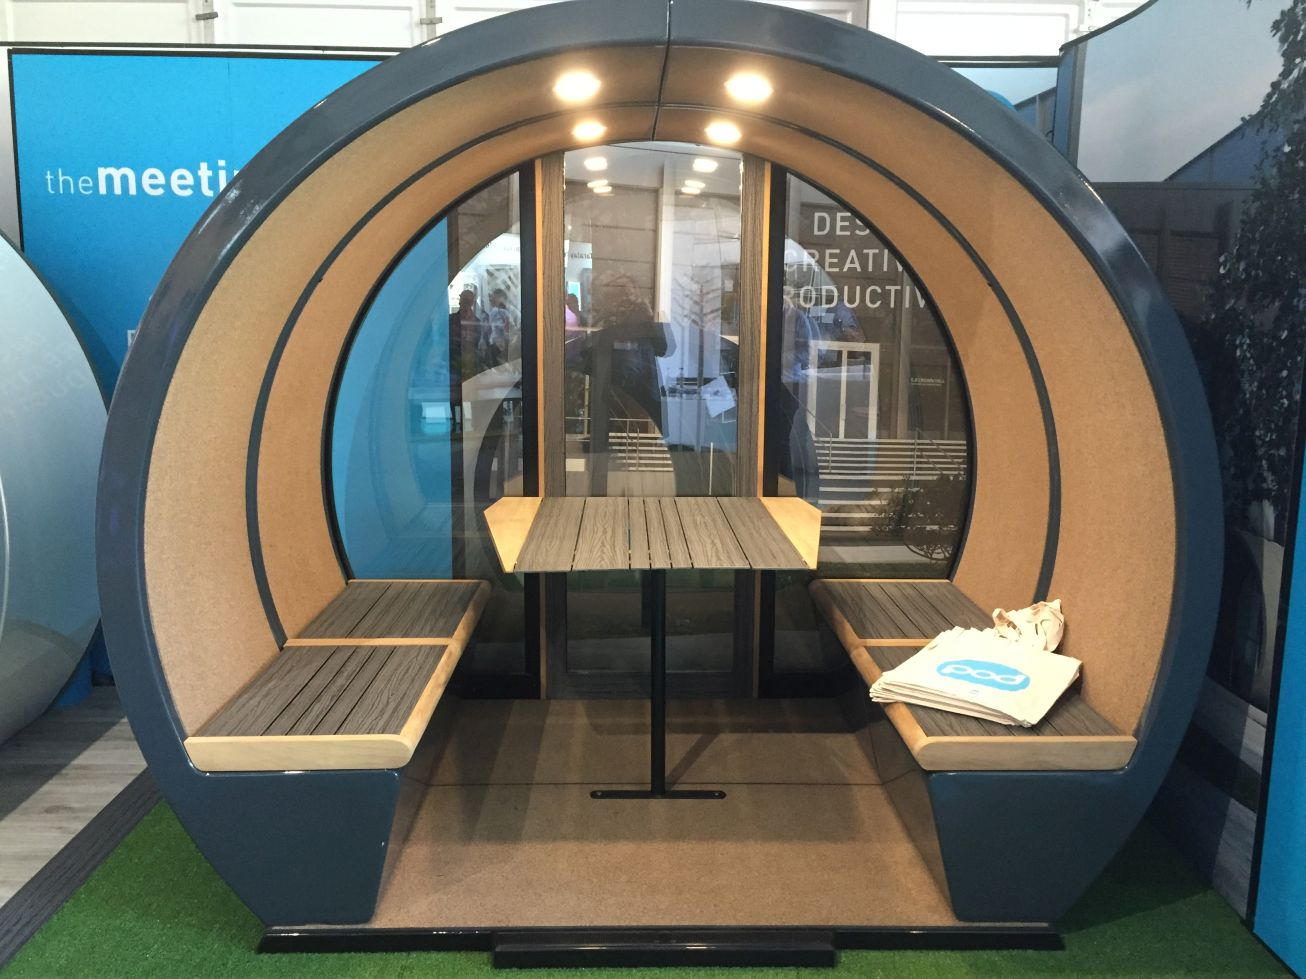 Meeting Pod Co